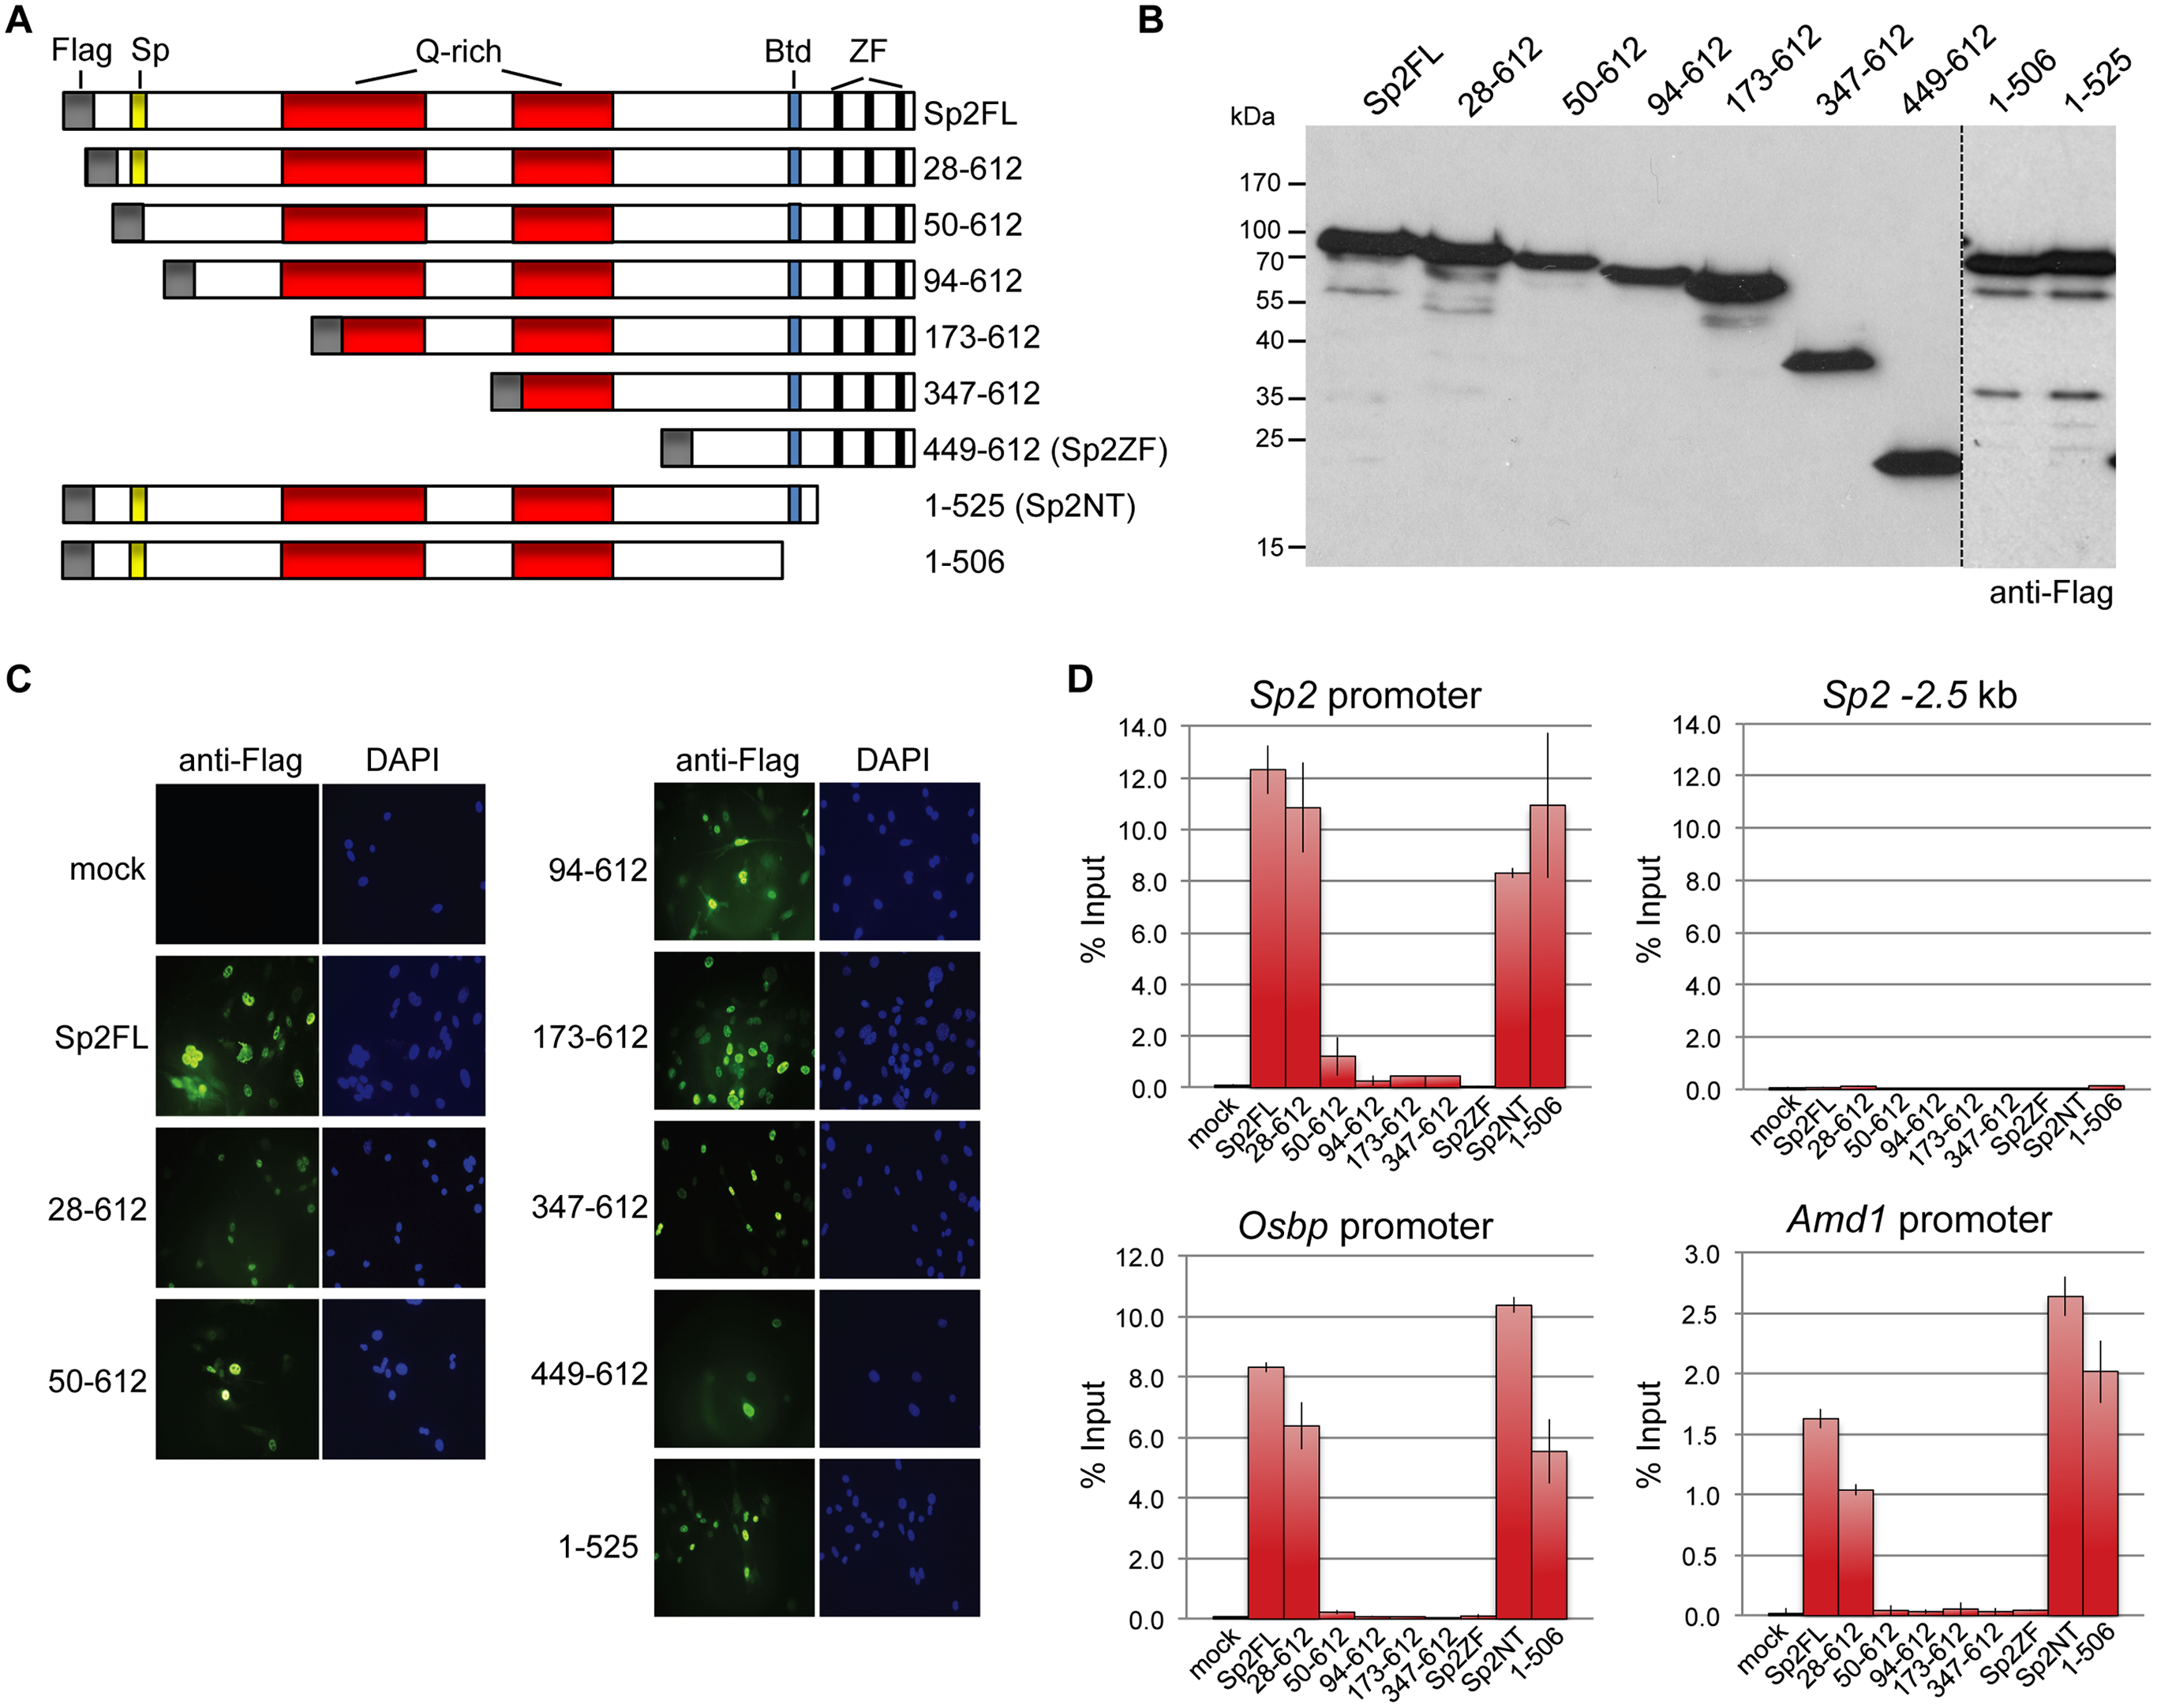 Binding of Sp2 deletion mutants to selected target promoters.